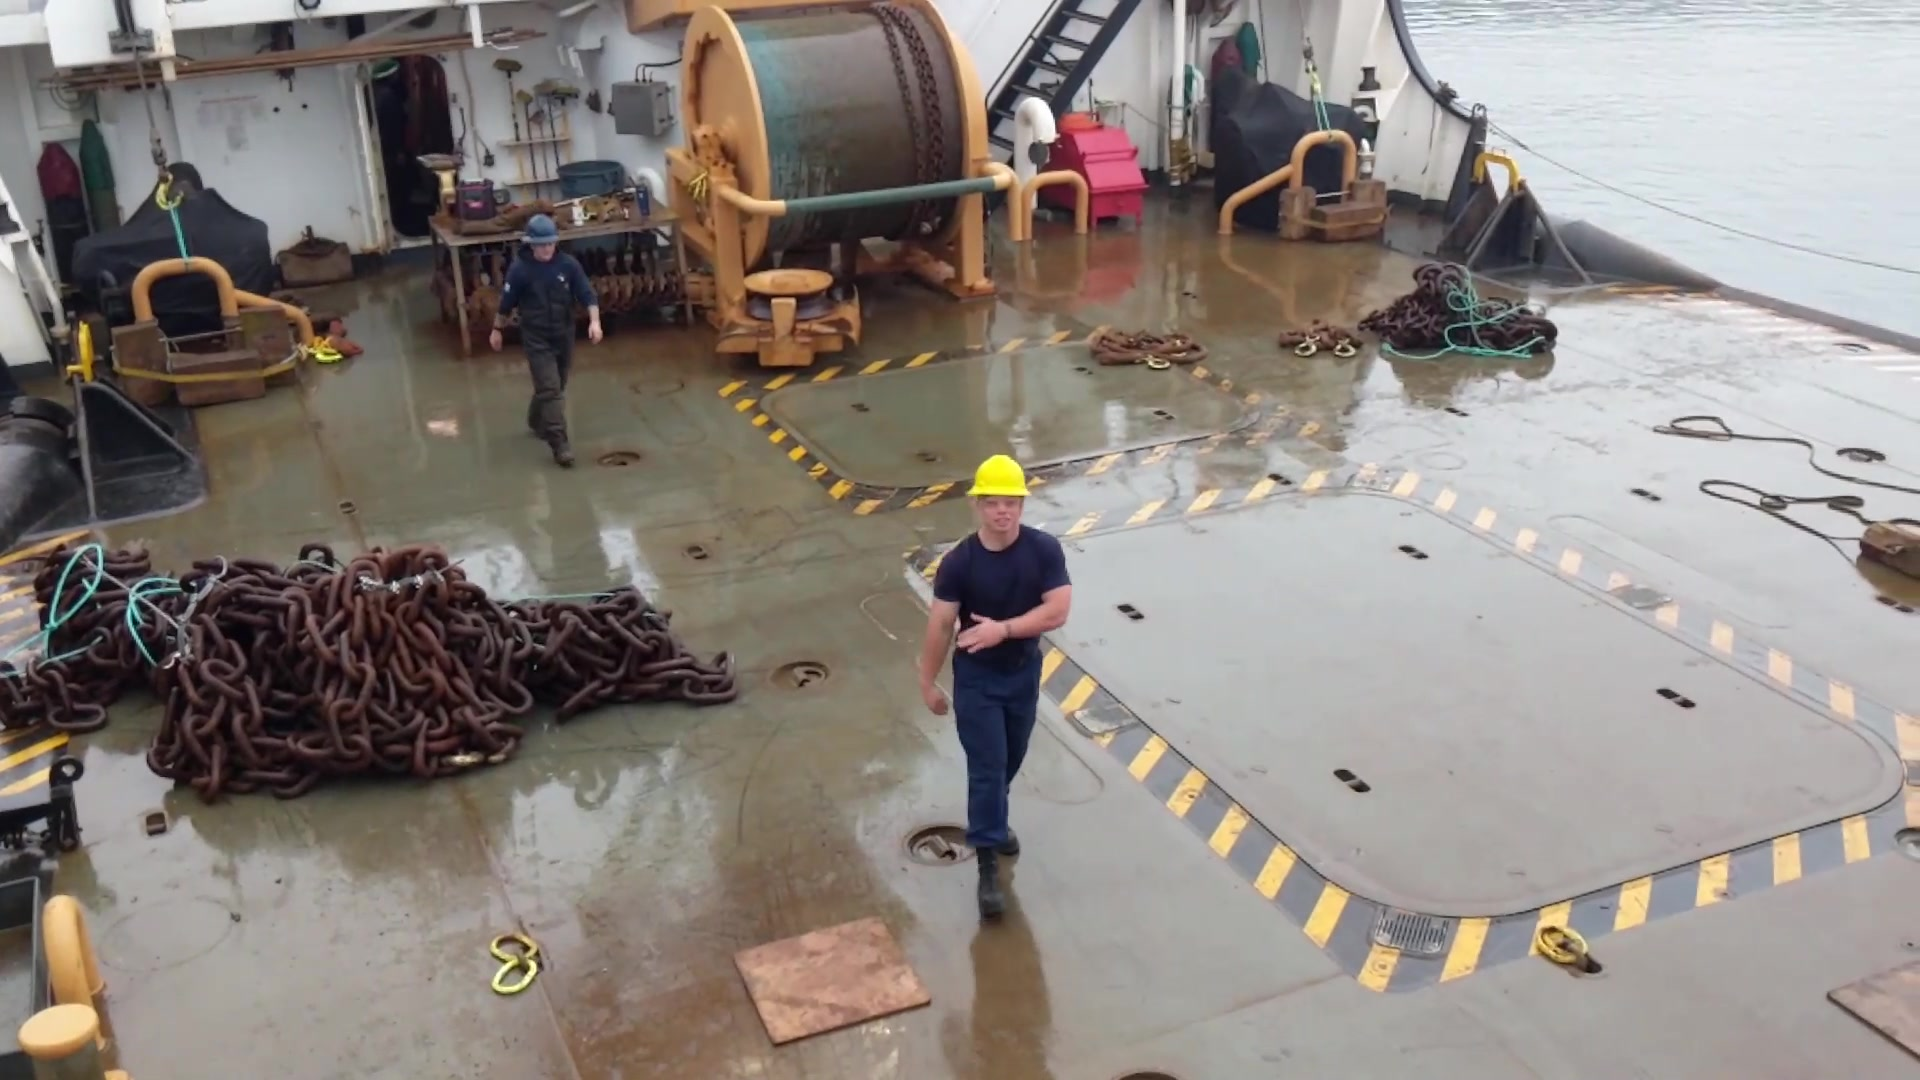 Crewmembers from Coast Guard Cutter Elm (WLB-204) host a virtual tour of the buoy tender on July 9, 2020, in Astoria, Oregon. The Elm was commissioned in November 1998 and recently underwent major dry dock repairs in Baltimore, Maryland. (U.S. Coast Guard video by ENS Michael Kovacks, PA3 Trevor Lilburn, and PA2 Steve Strohmaier)